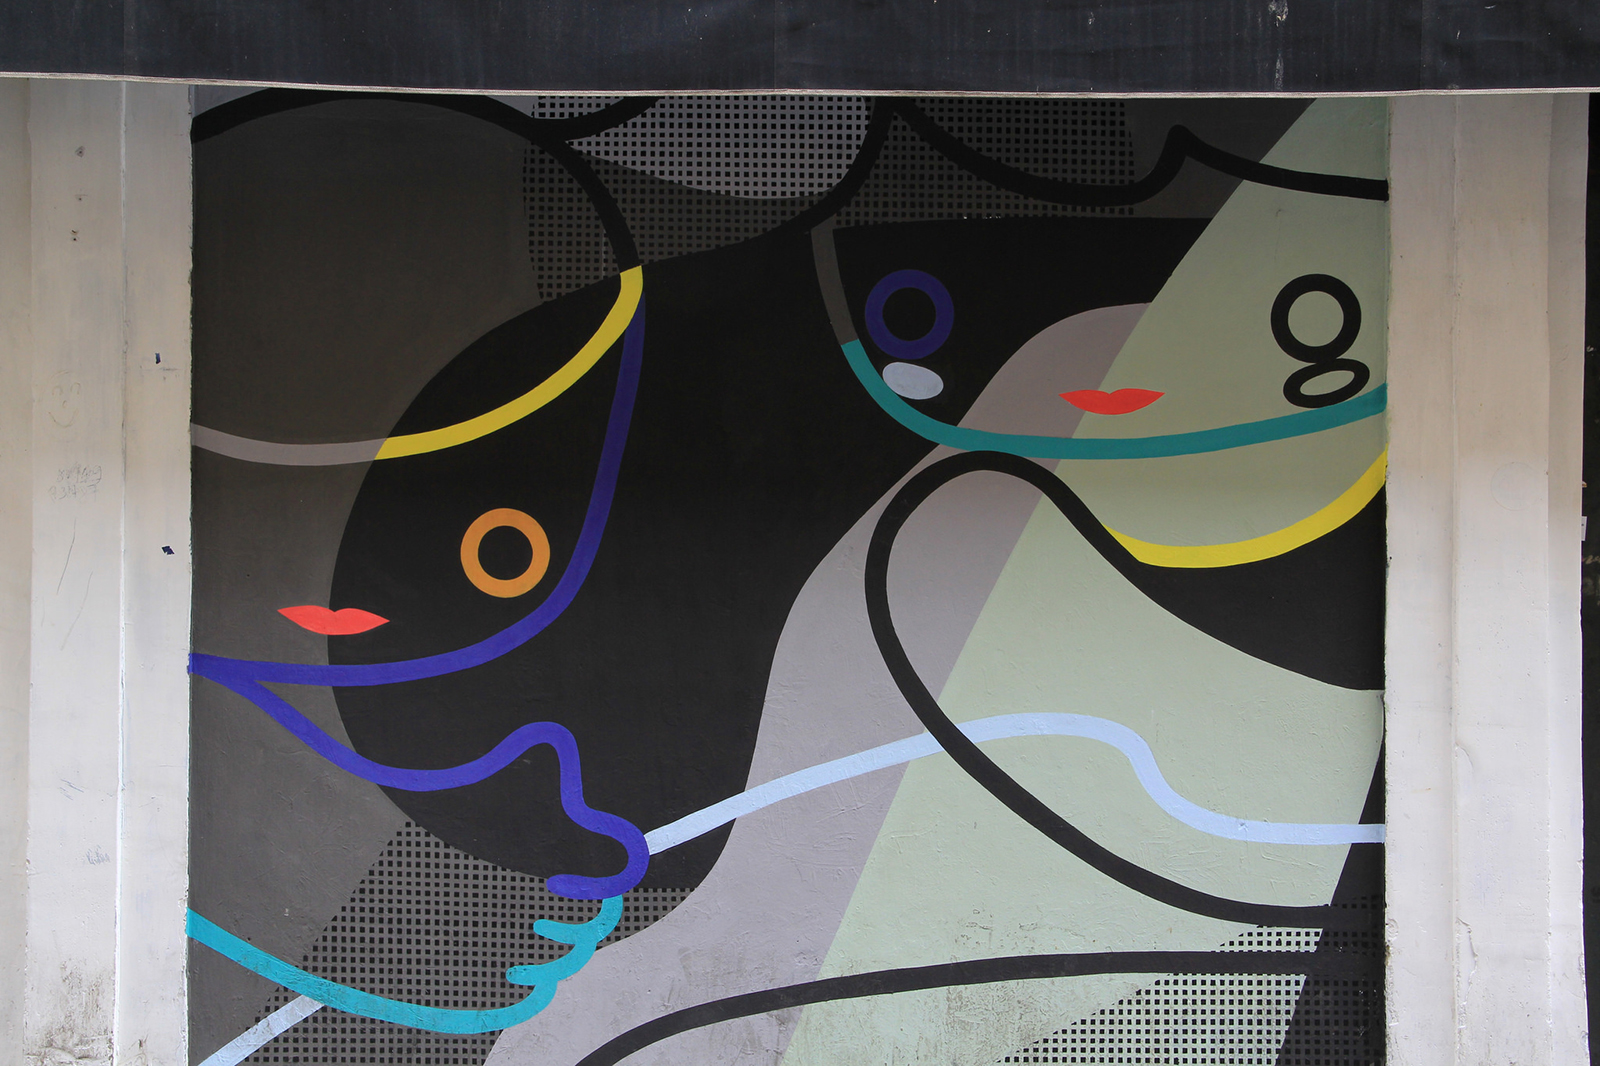 gue-la-nuit-new-mural-in-catania-02